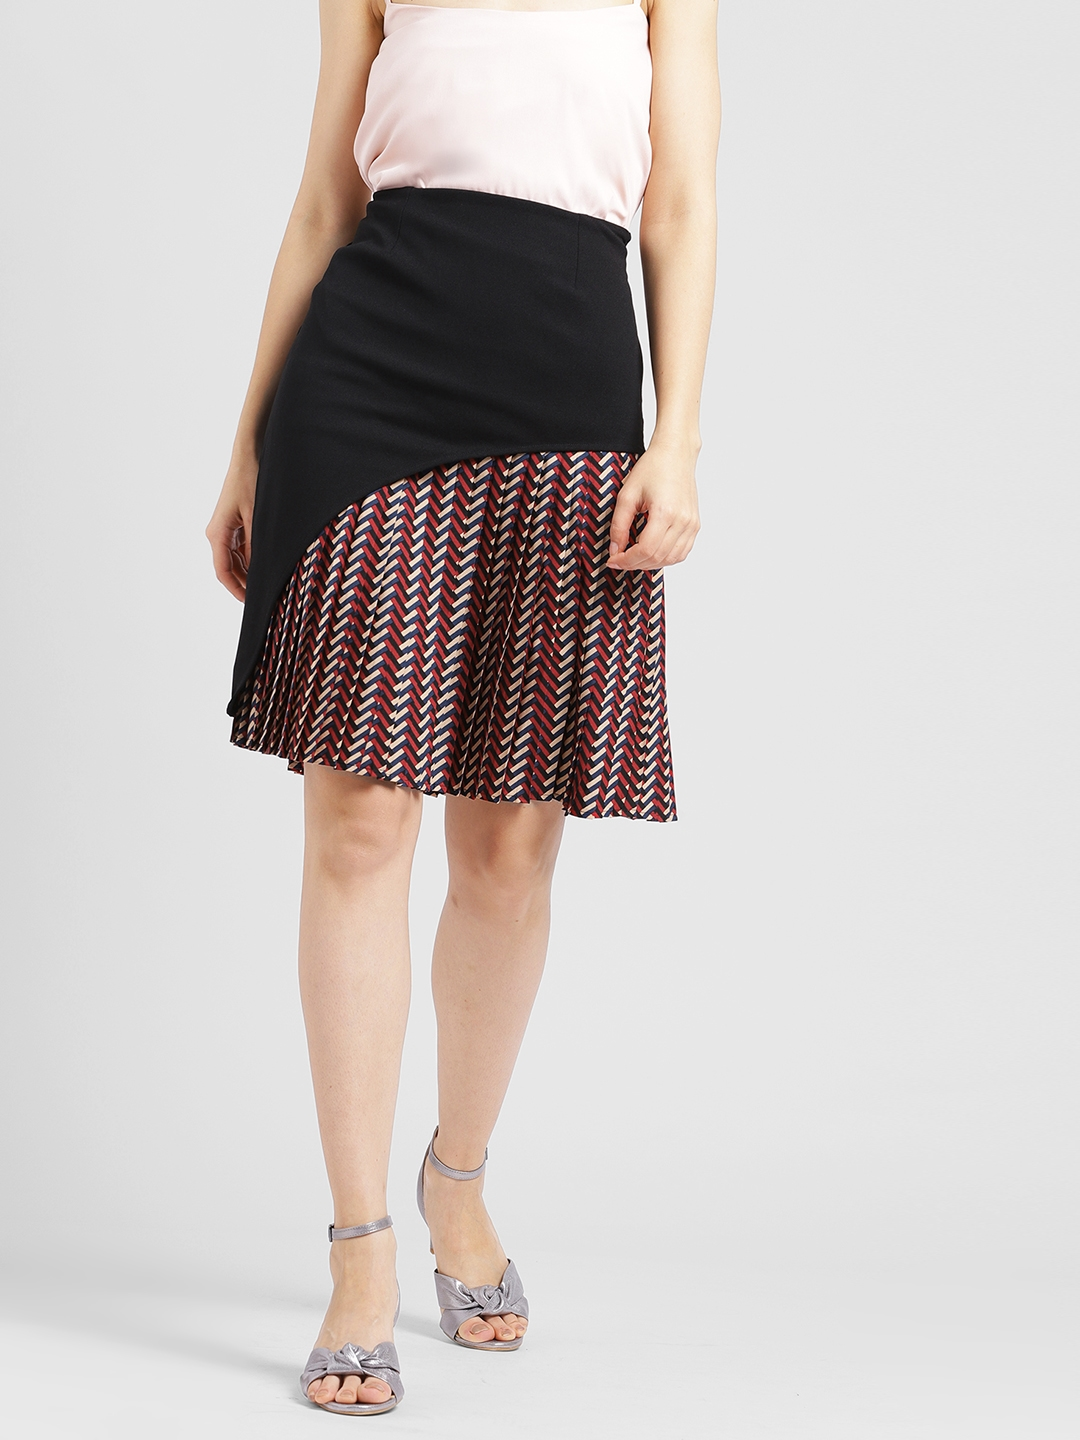 353710a8dfae Buy Leo Sansini Women Black & Maroon Colourblocked A Line Skirt ...